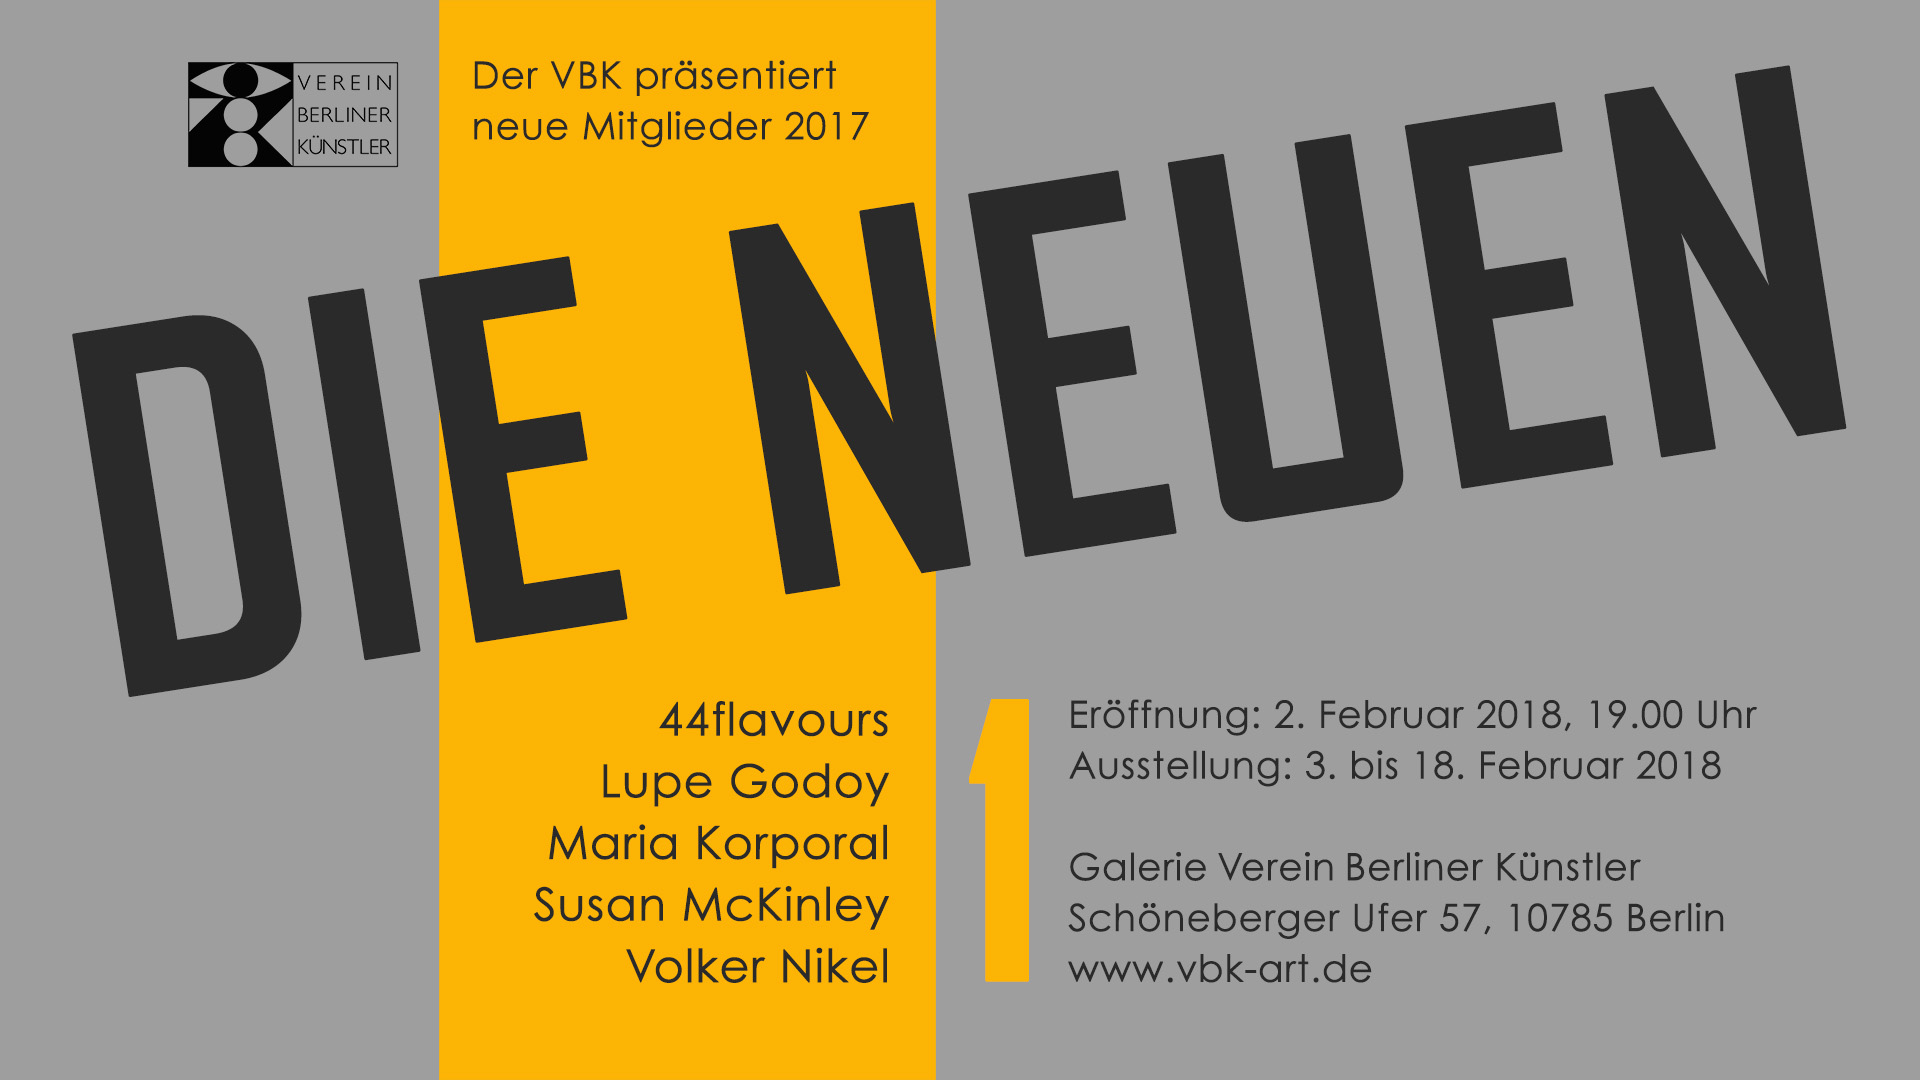 Exhibition DIE NEUEN in Gallery VBK, Berlin